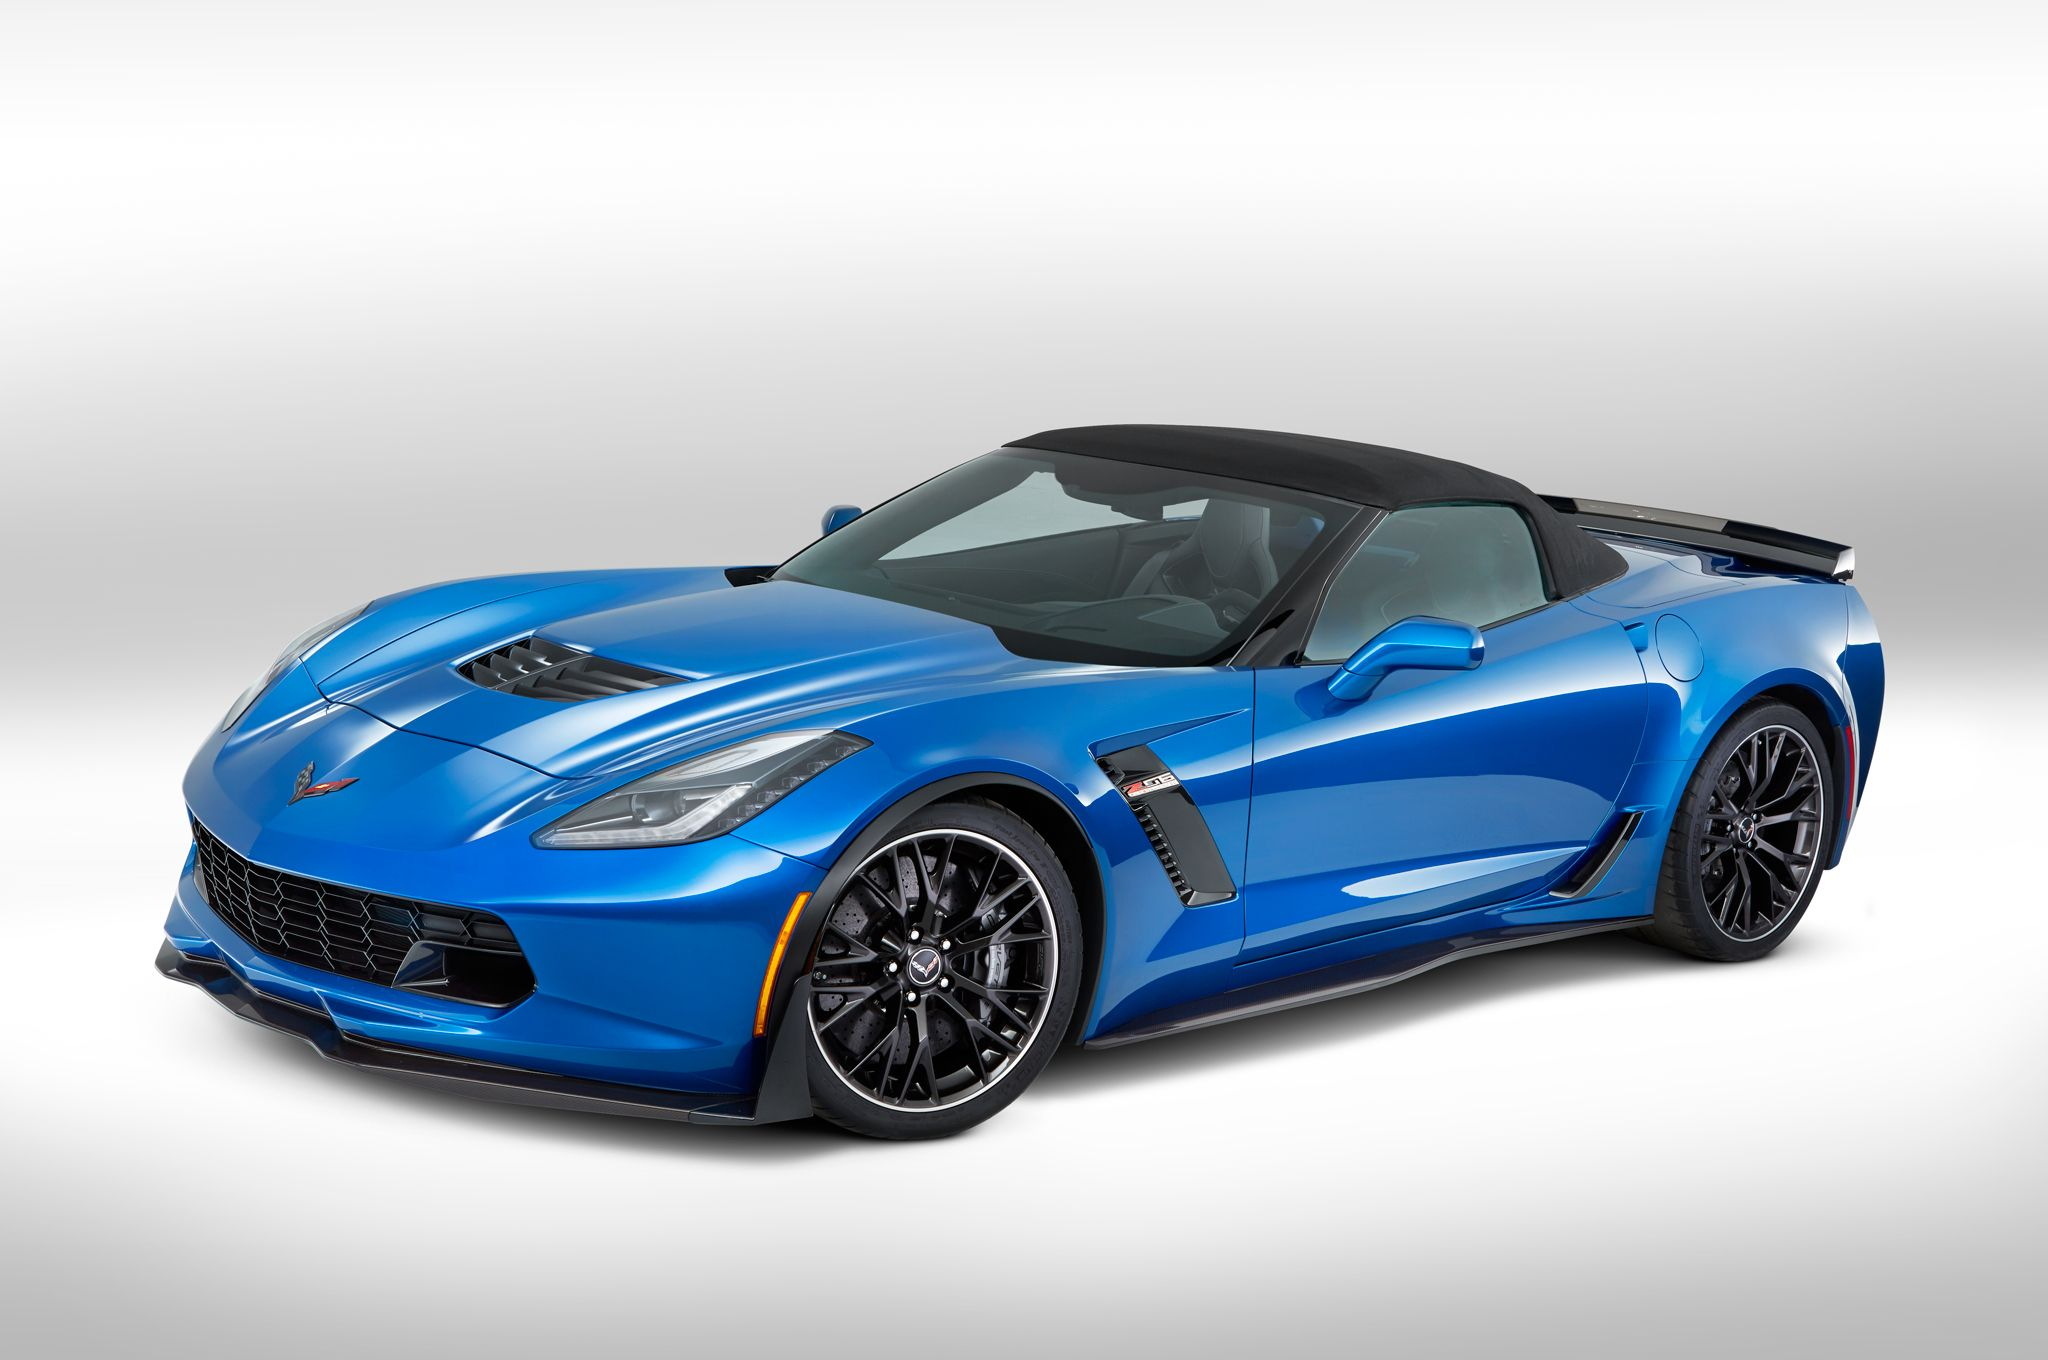 http://static2.therichestimages.com/cdn/1000/664/90/cw/wp-content/uploads/2015/04/Chevrolet-Corvette-2016-Release-date.jpg